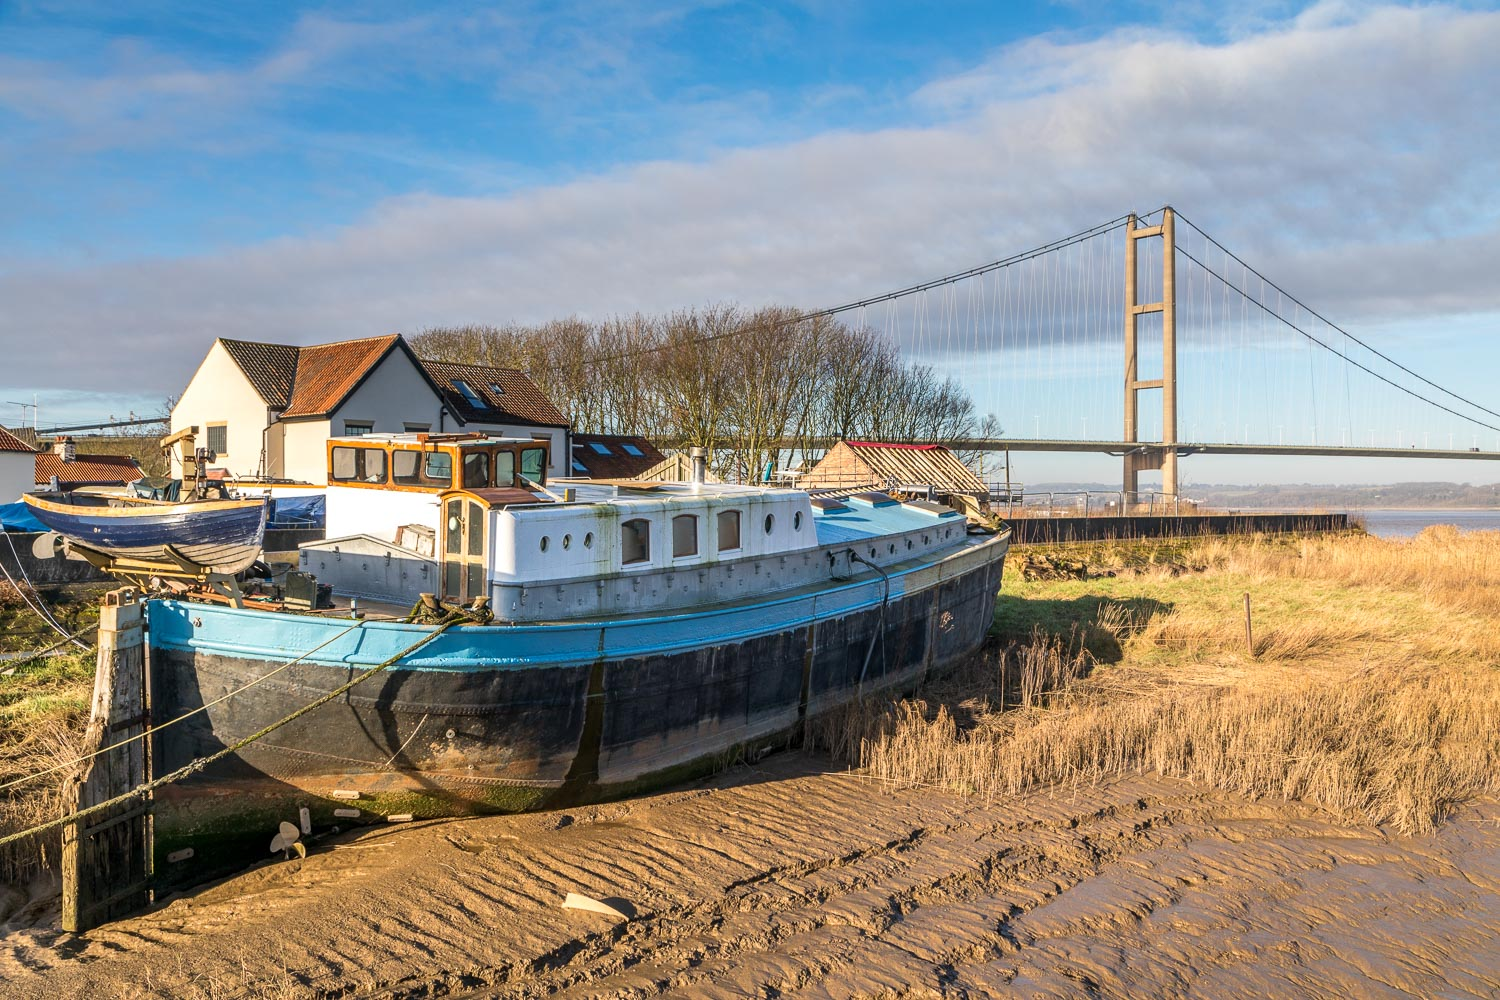 Ferry Landing, Barton Haven, Humber Bridge